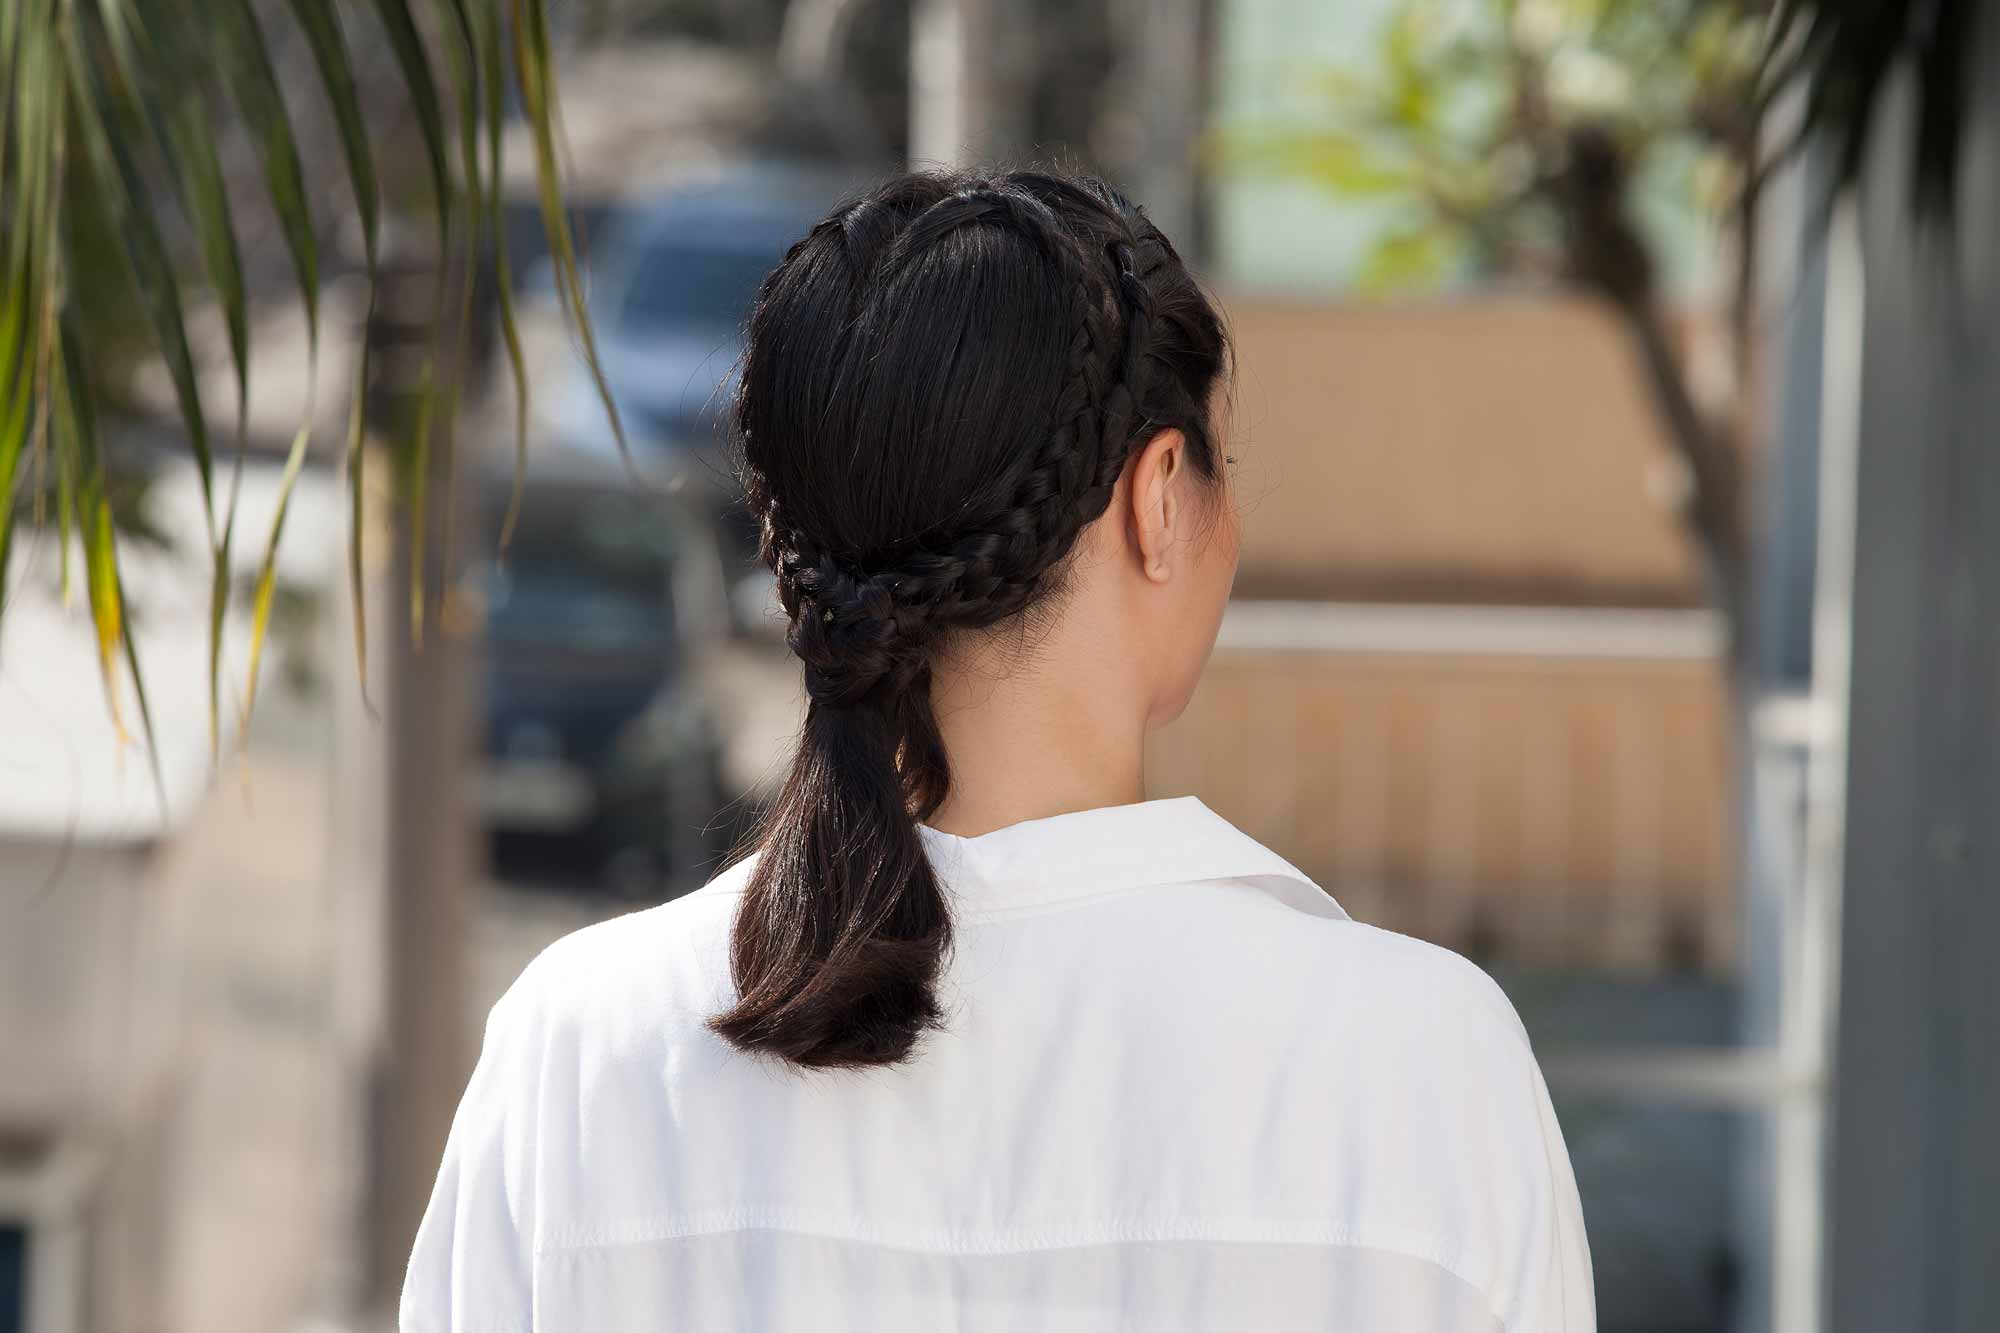 Heart braid is a quirky hairstyles that are both festive and glamorous